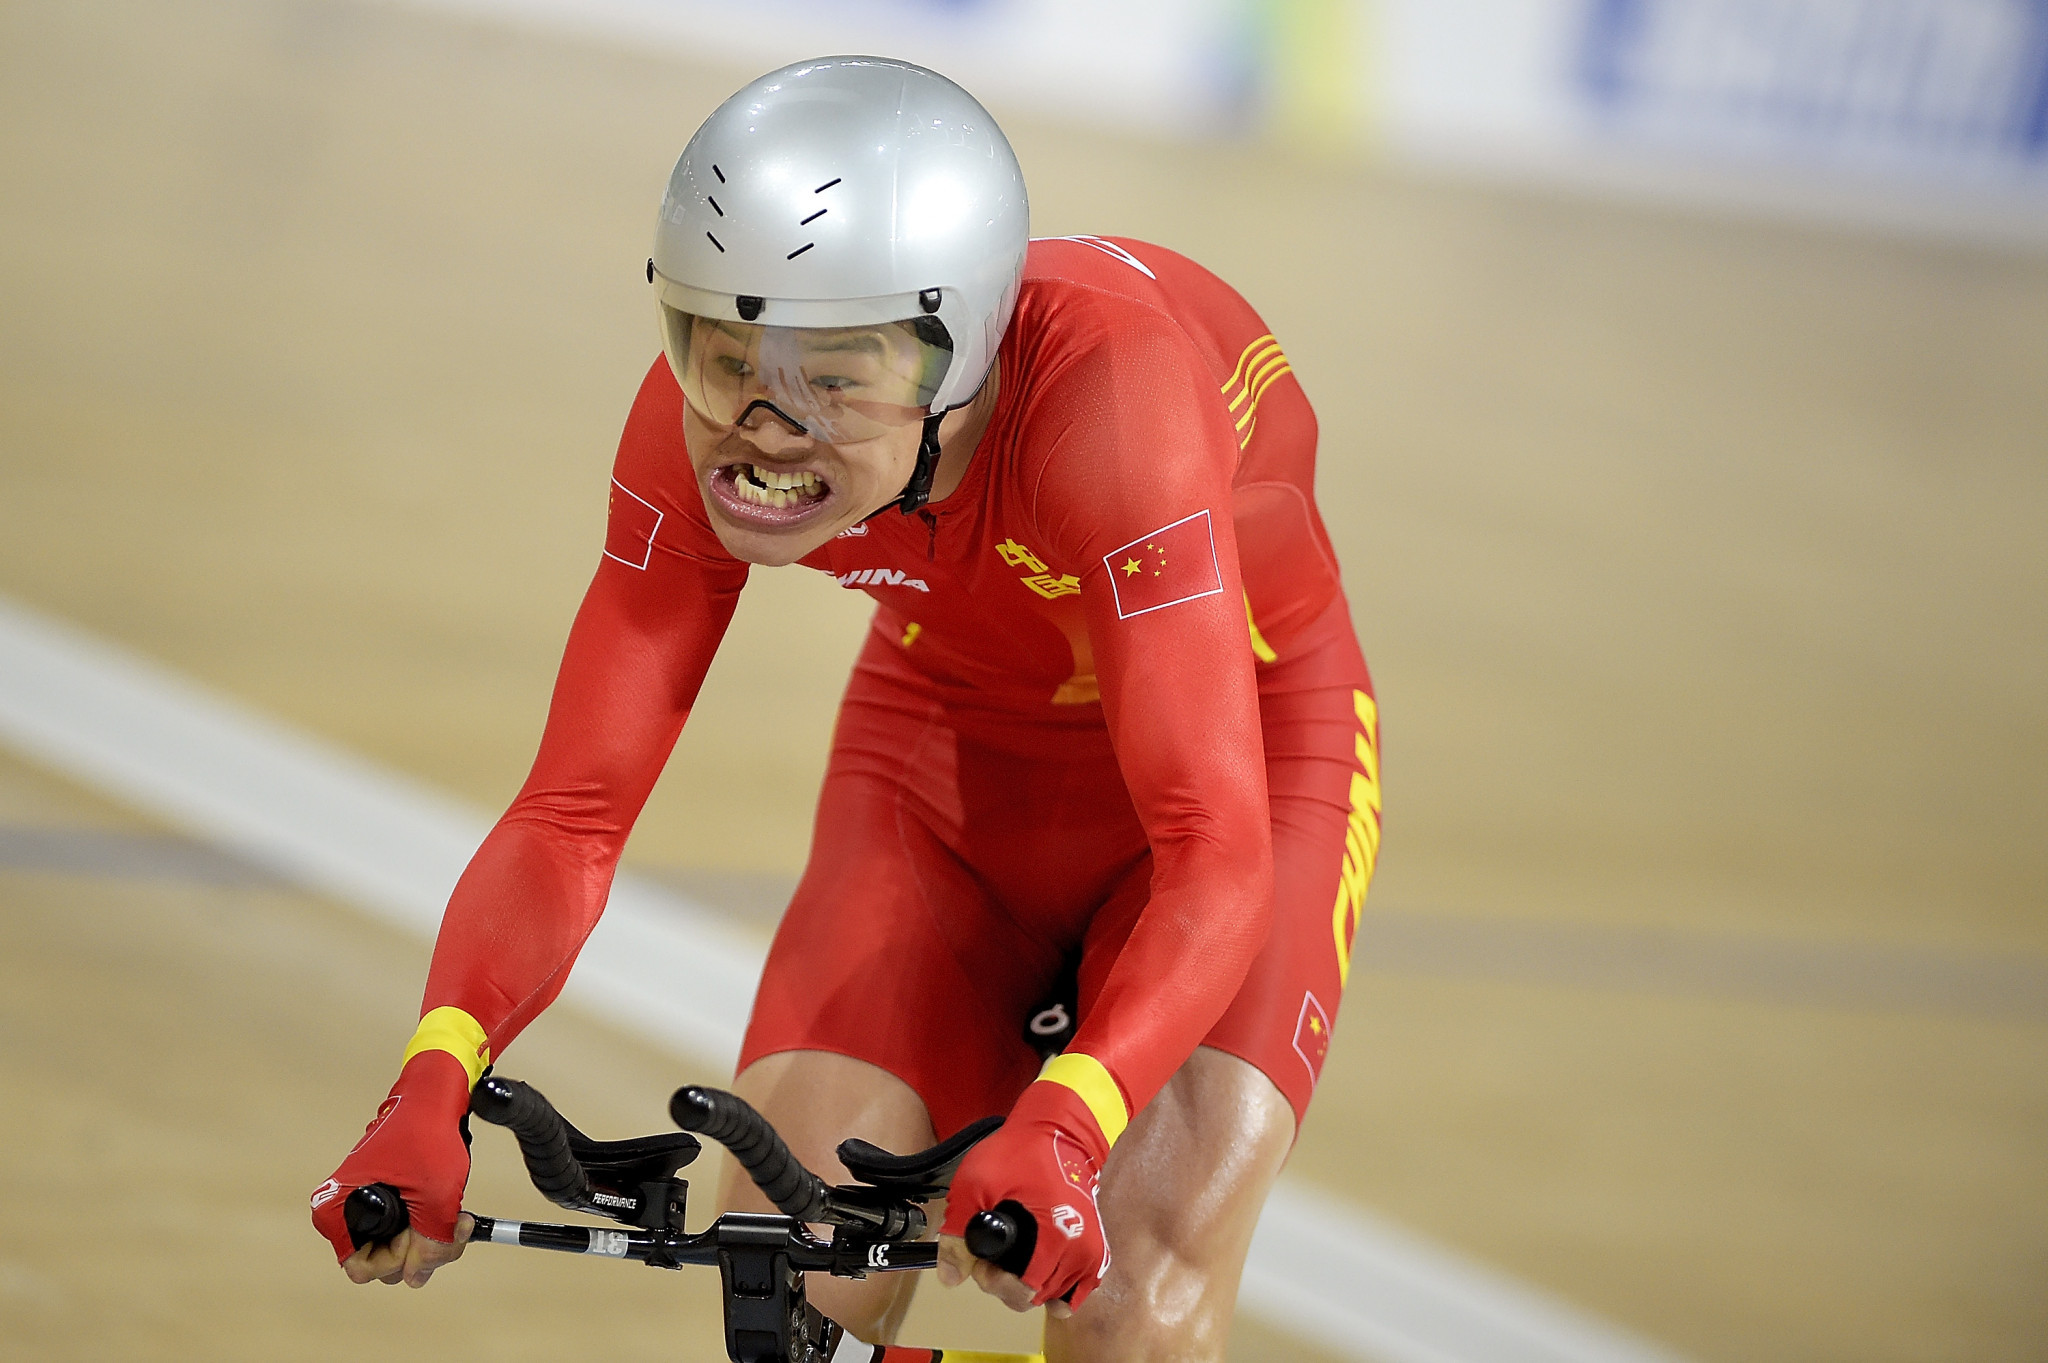 World records tumble as time trial action dominates on day two of UCI Para-cycling Track World Championships